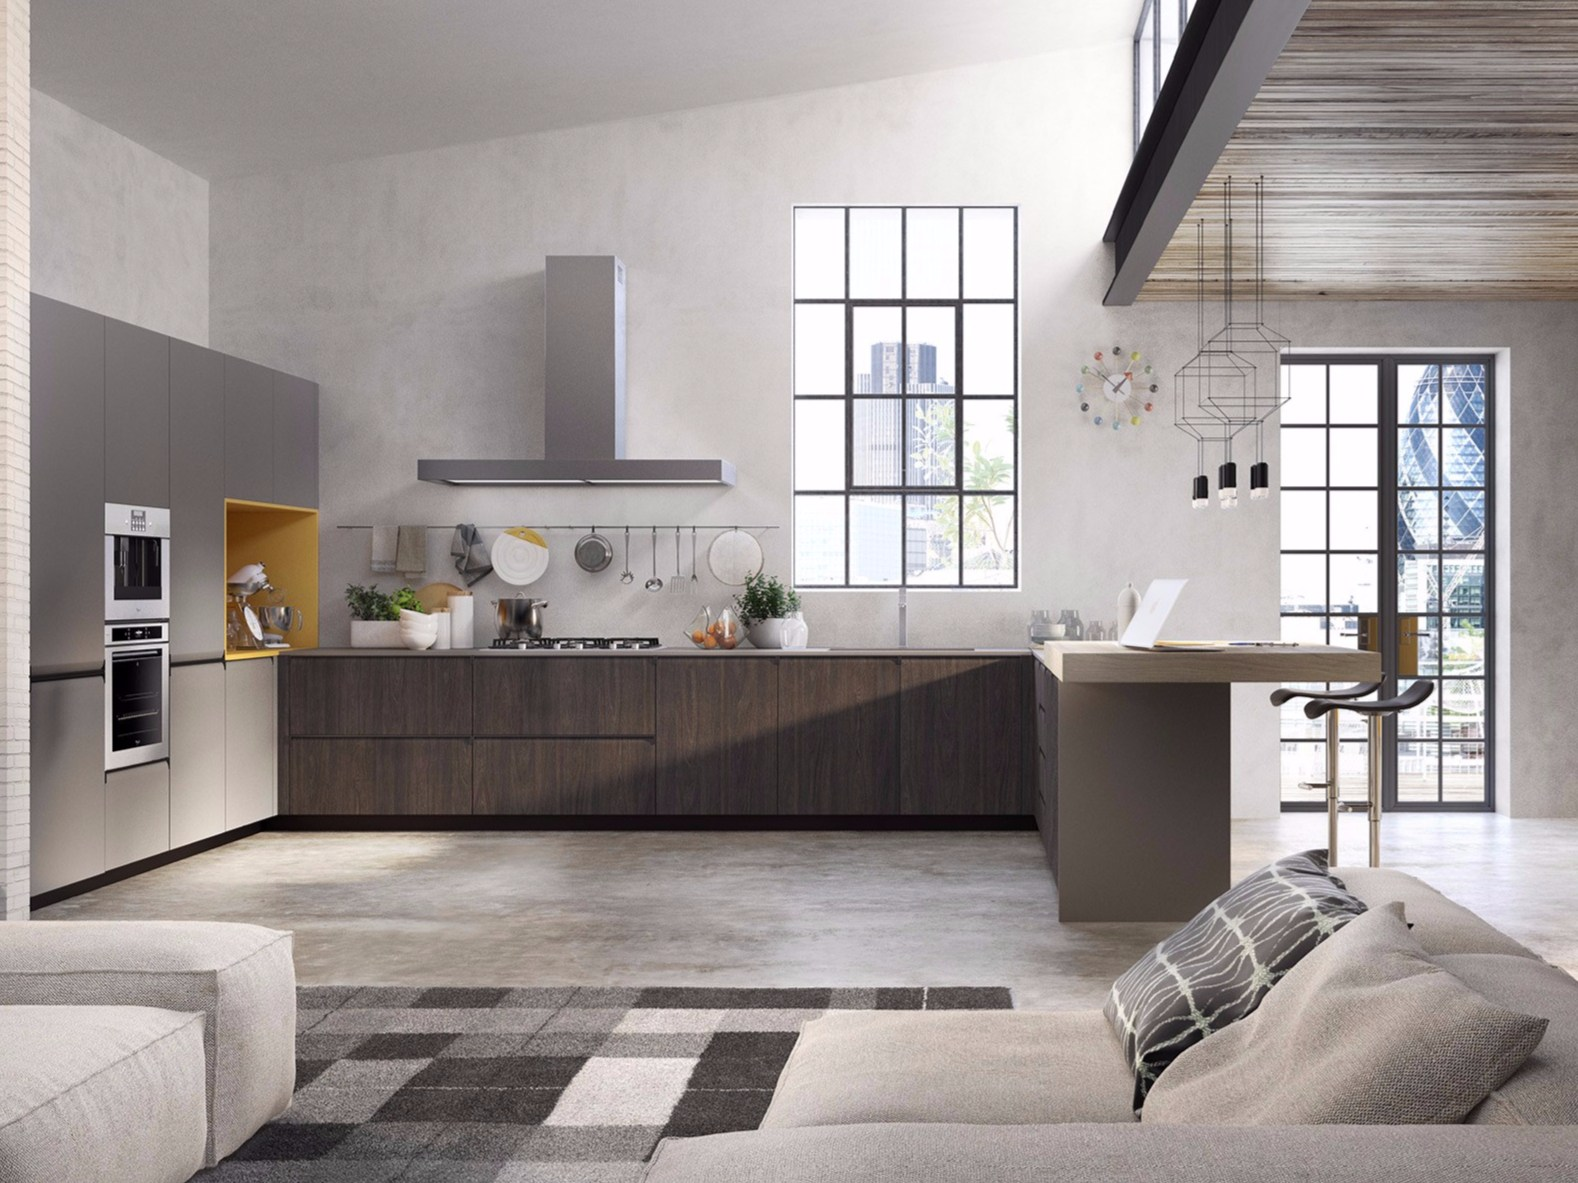 GIBILTERRA Kitchen with integrated handles by Del Tongo